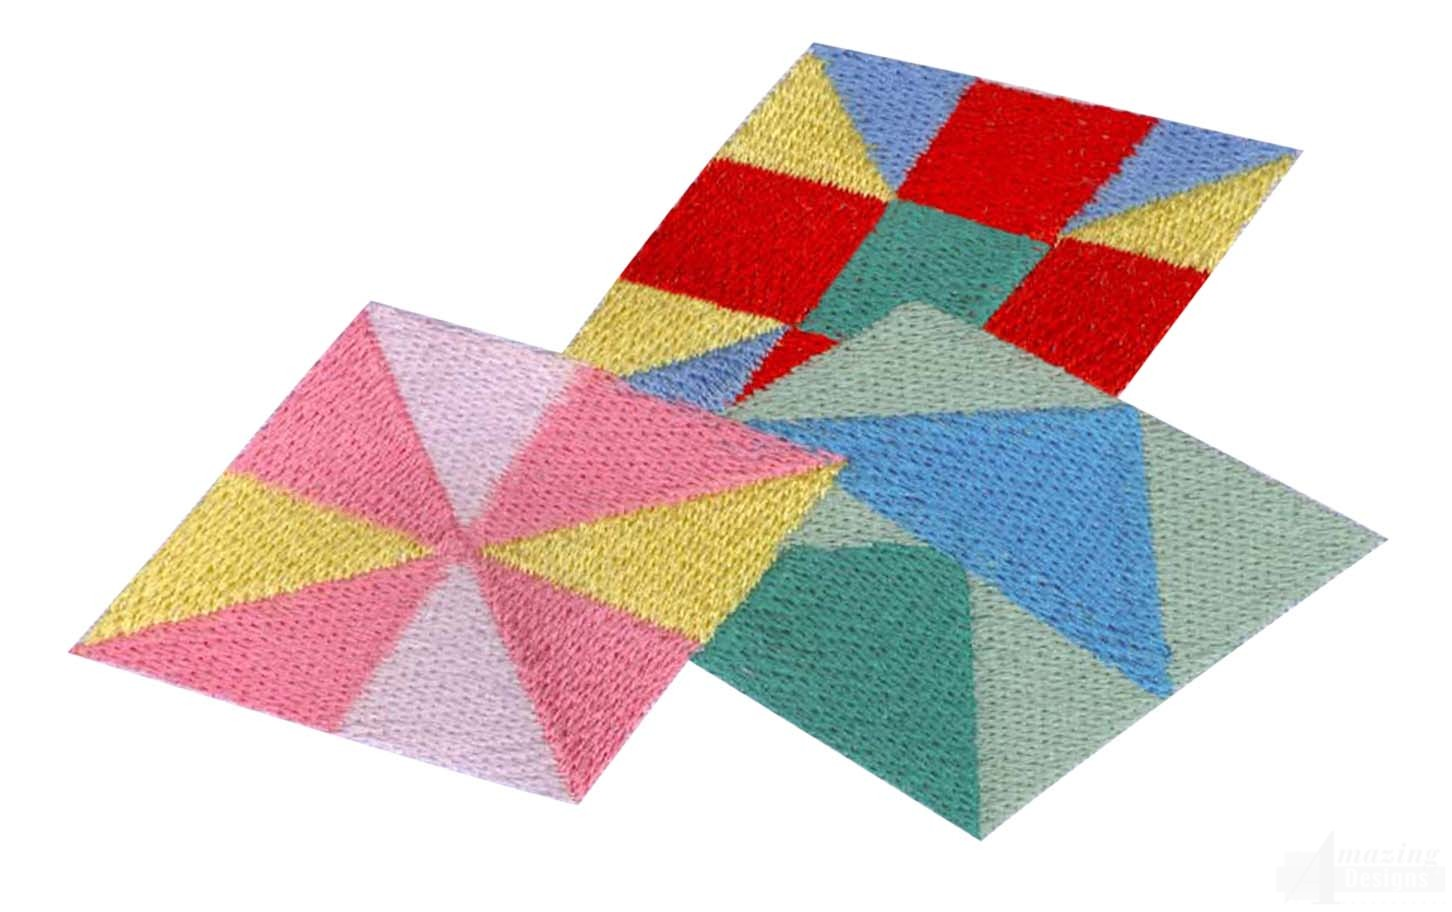 Embroidery Patterns For Quilt Squares : Quilt Squares Embroidery Design